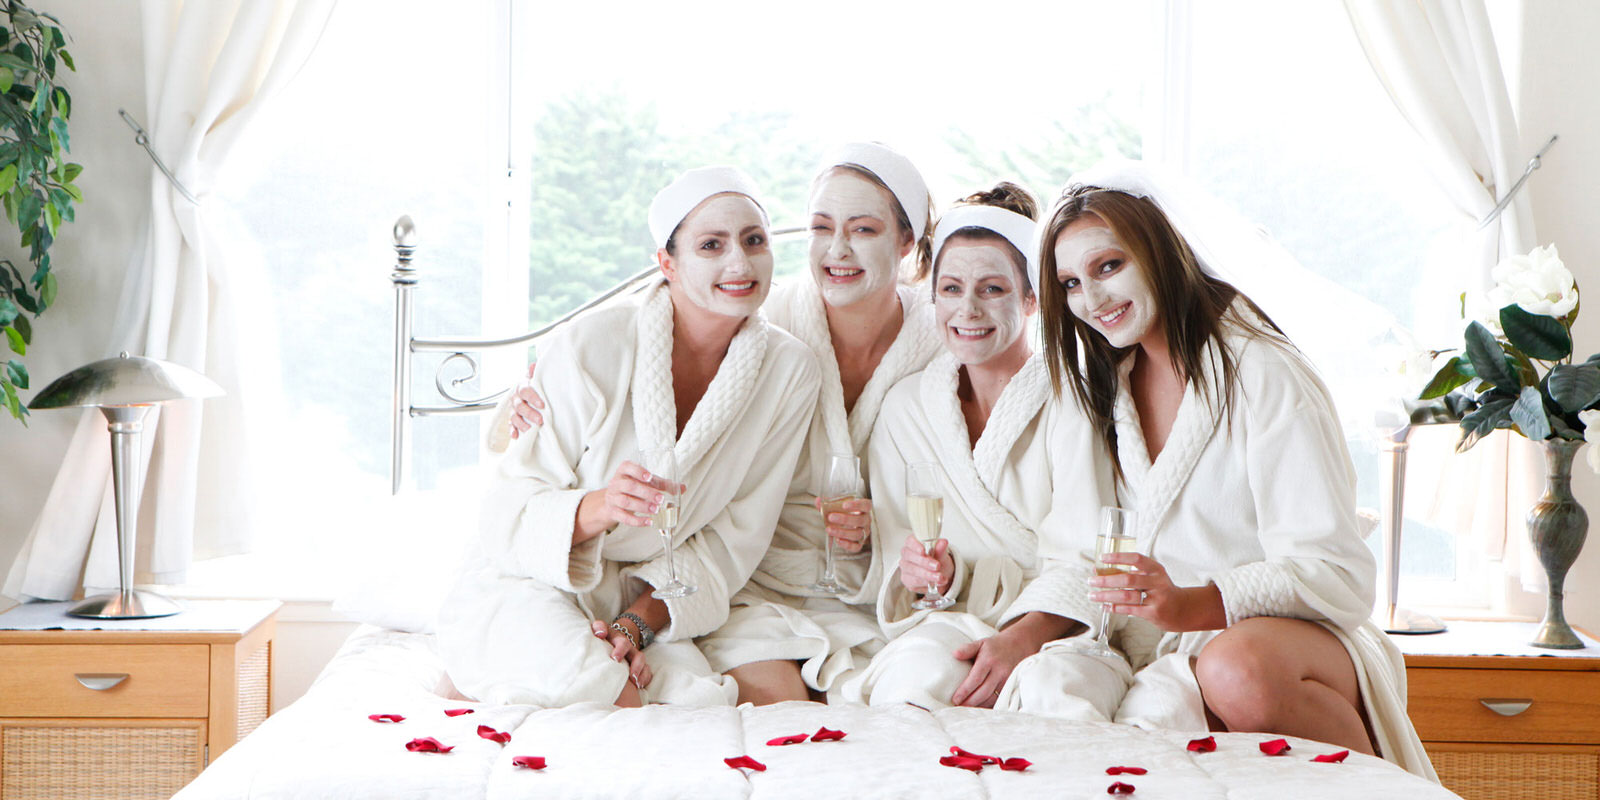 Group Spa Party